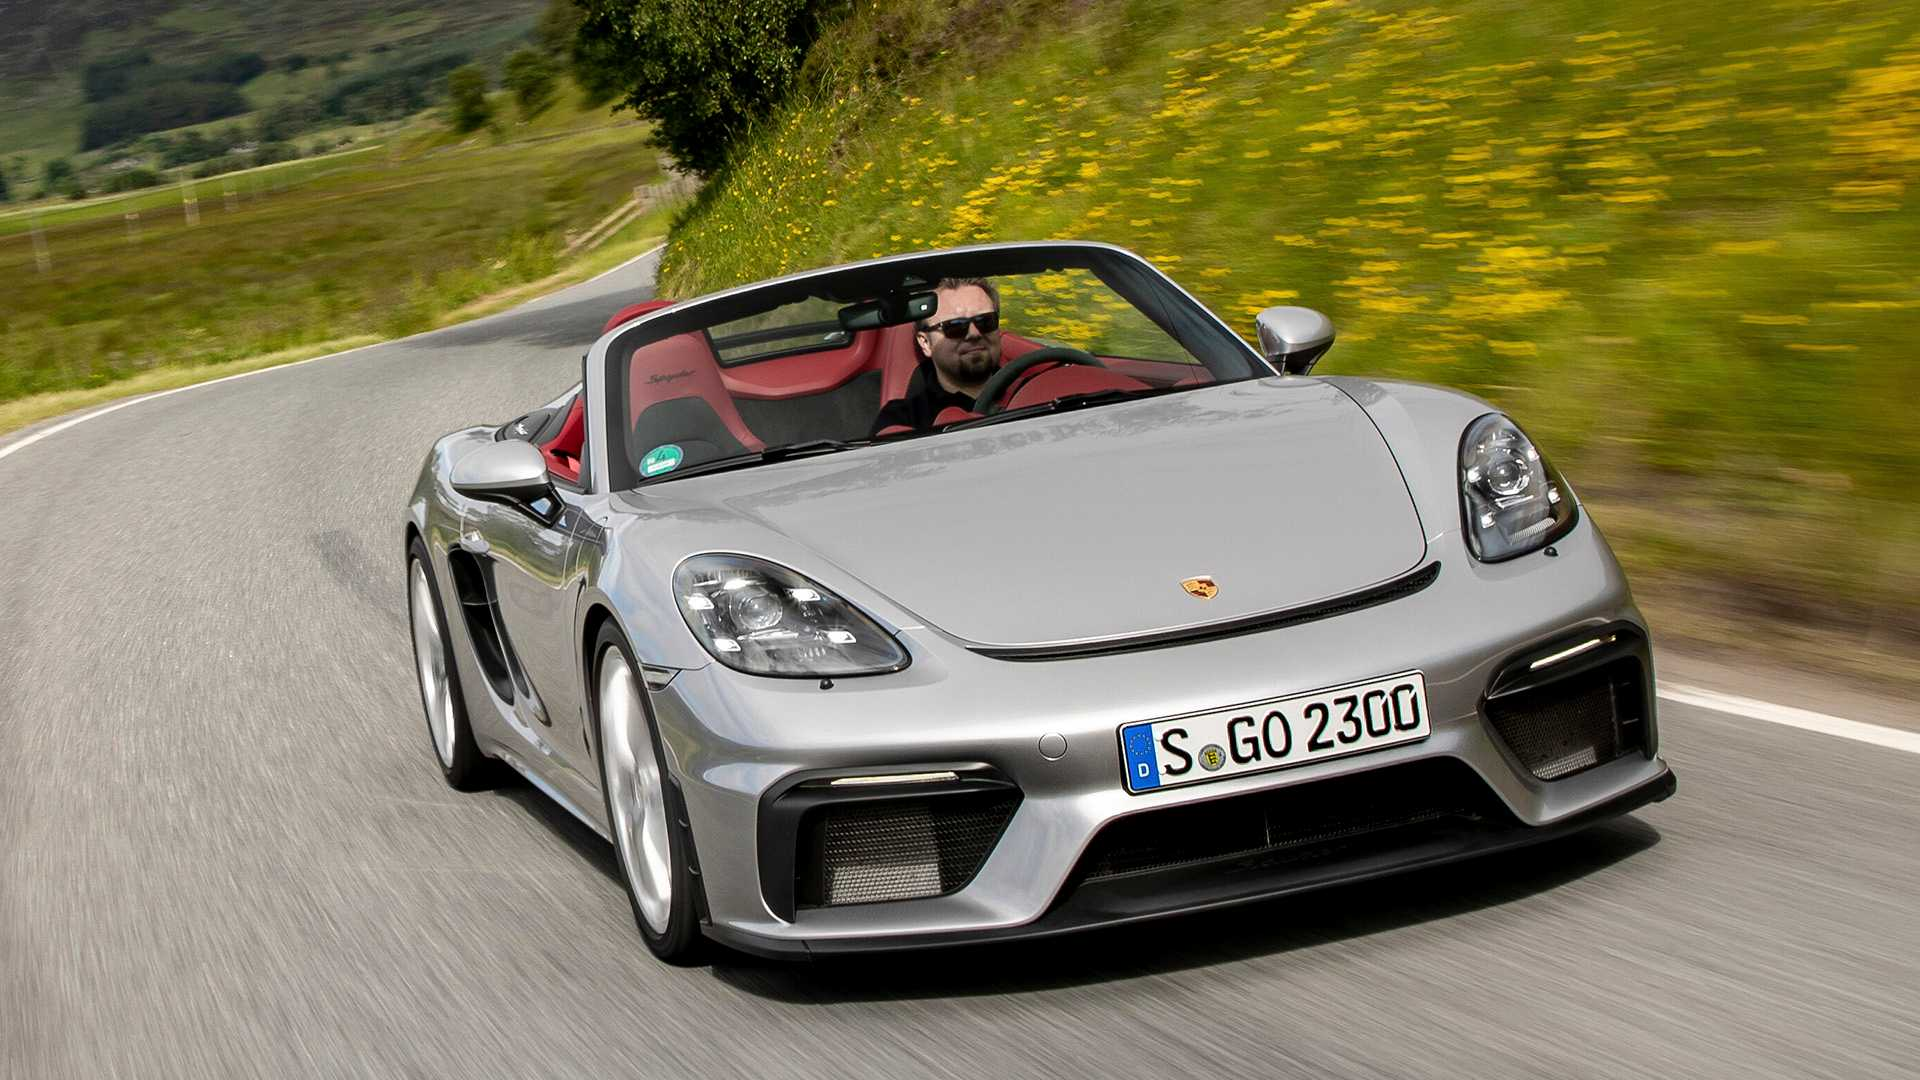 2020 Porsche Boxster Spyder Price, Design and Review